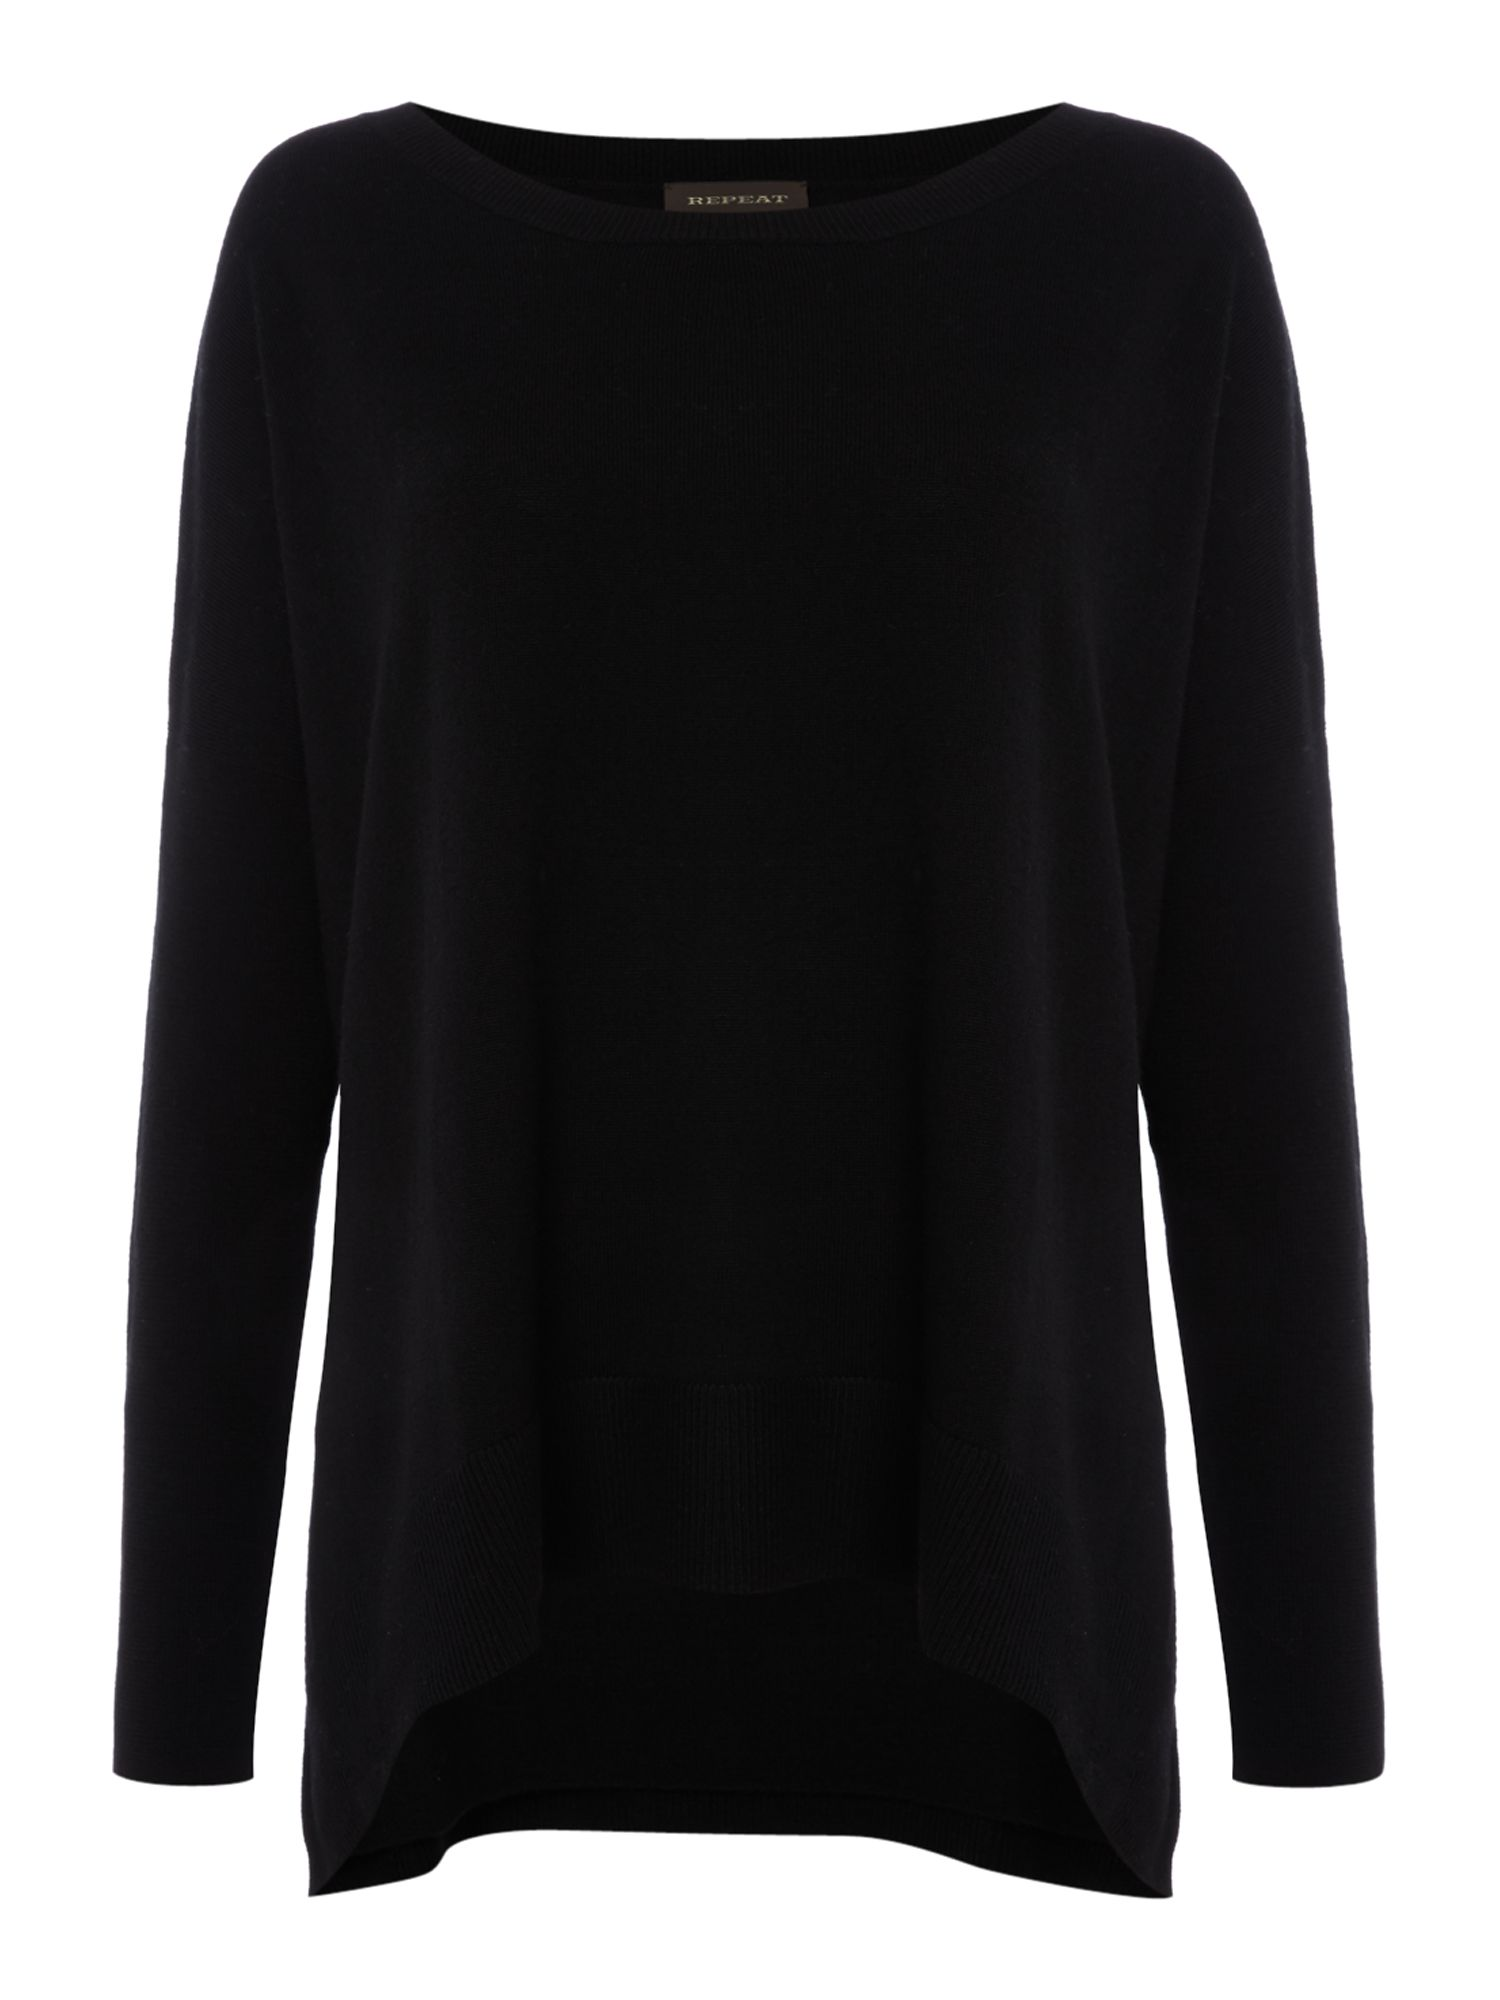 Repeat Cashmere Repeat Cashmere Round neck swing jumper, Black